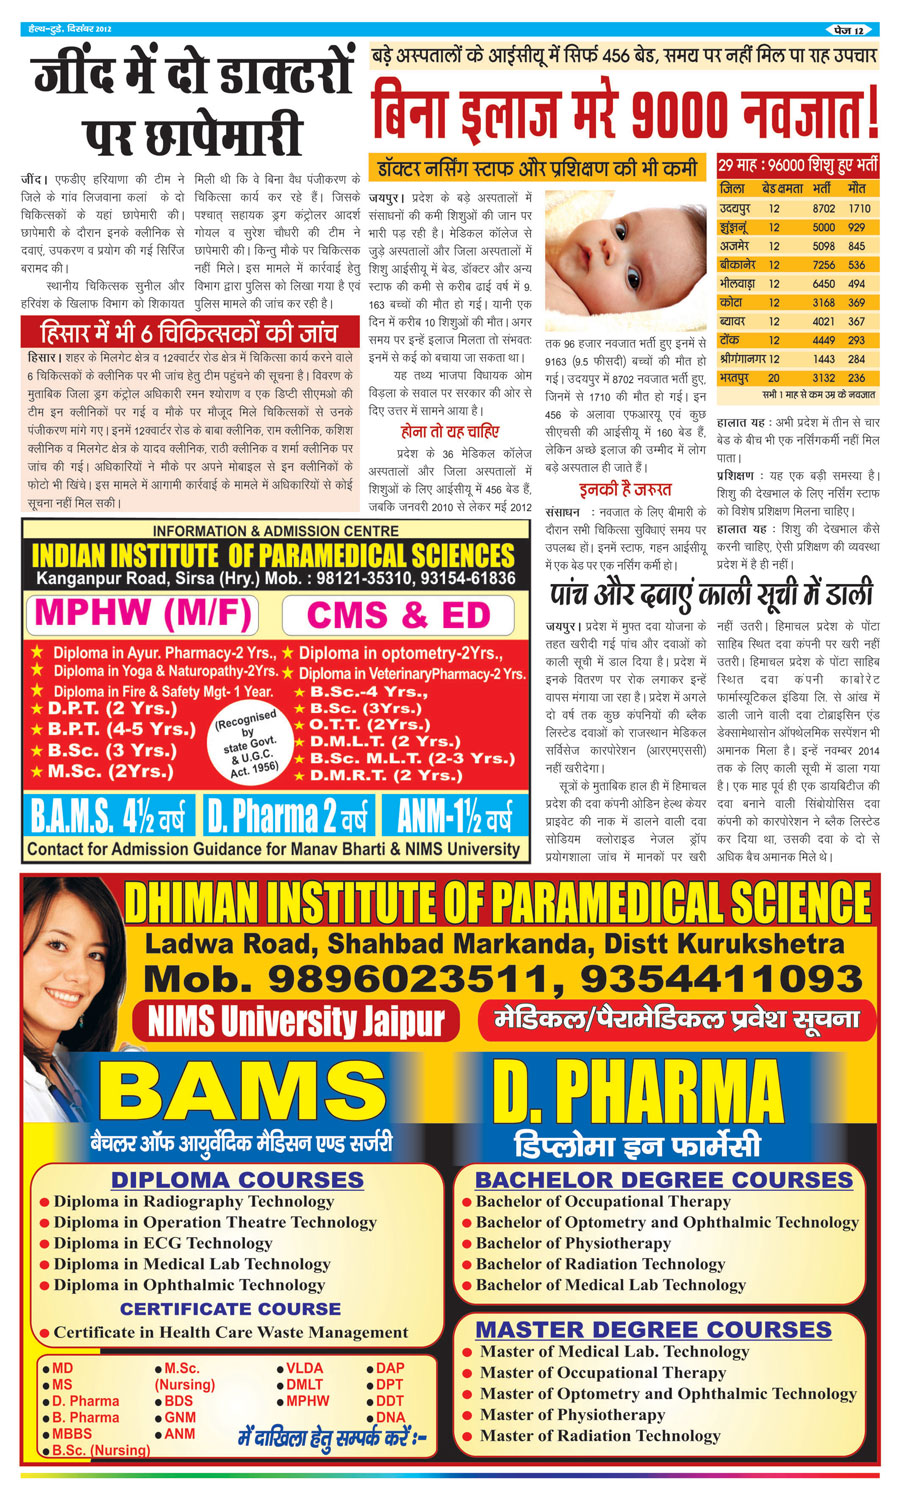 jind medical news fda children death in hospital in india pharma newspaper hisar health today pharmabiz all medical top health medicine doctor haryana dhiman paramedical ladwa shahbad markanda kurukshetra